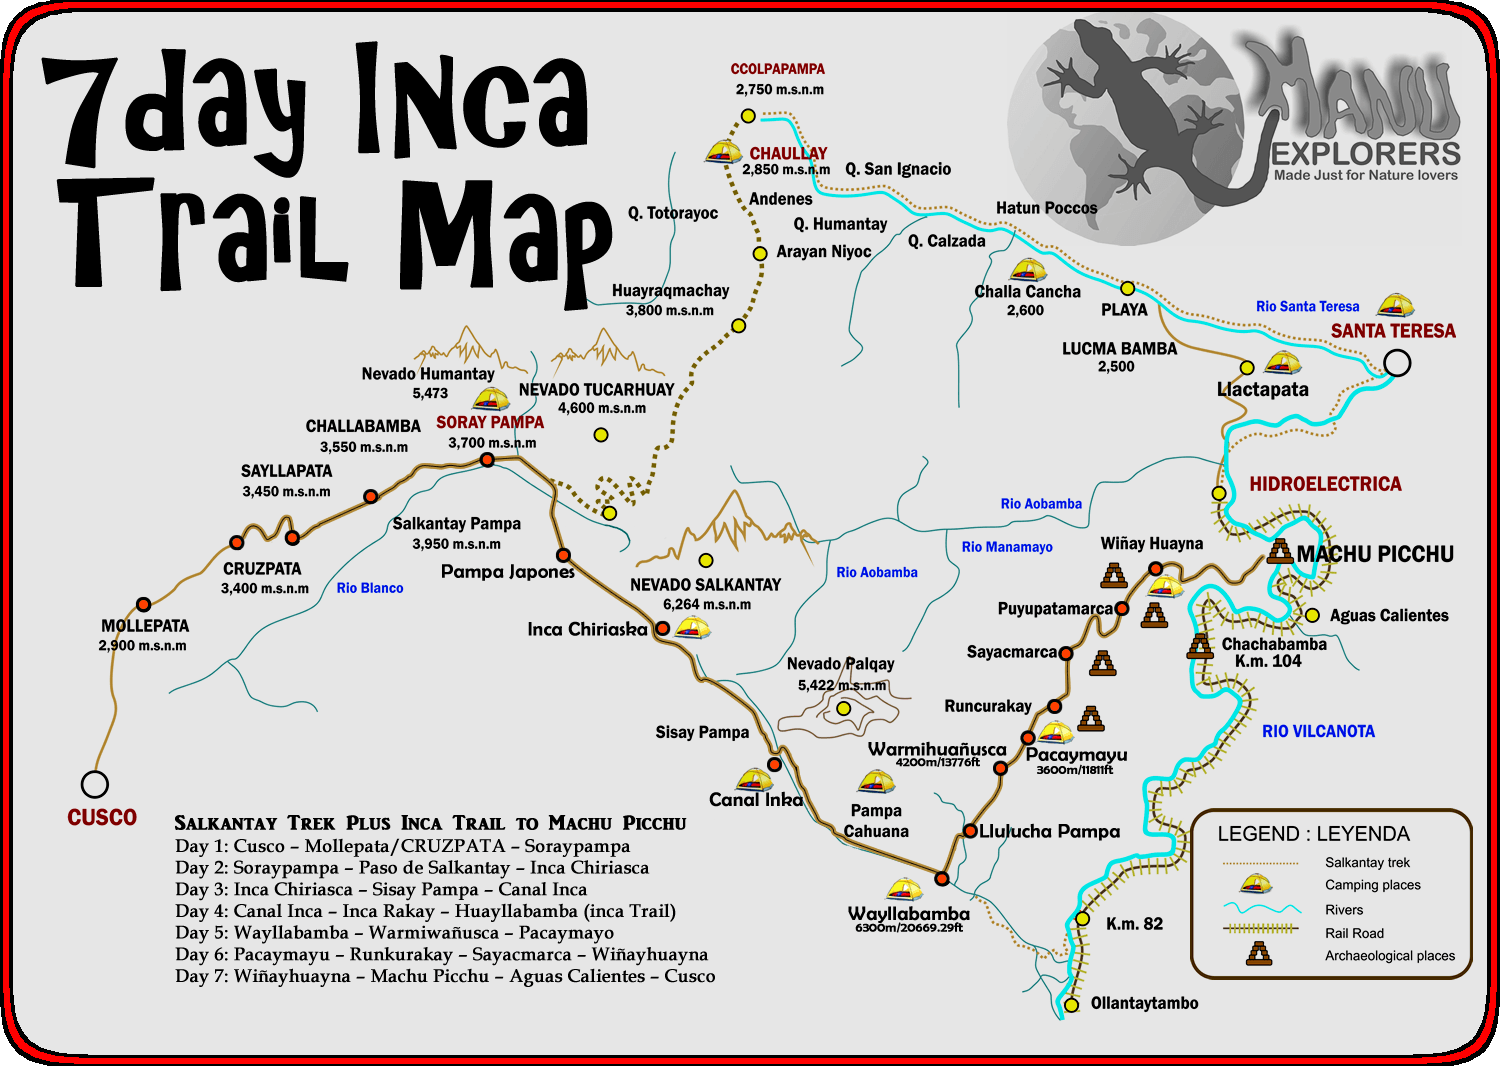 7day Inca Trail Map